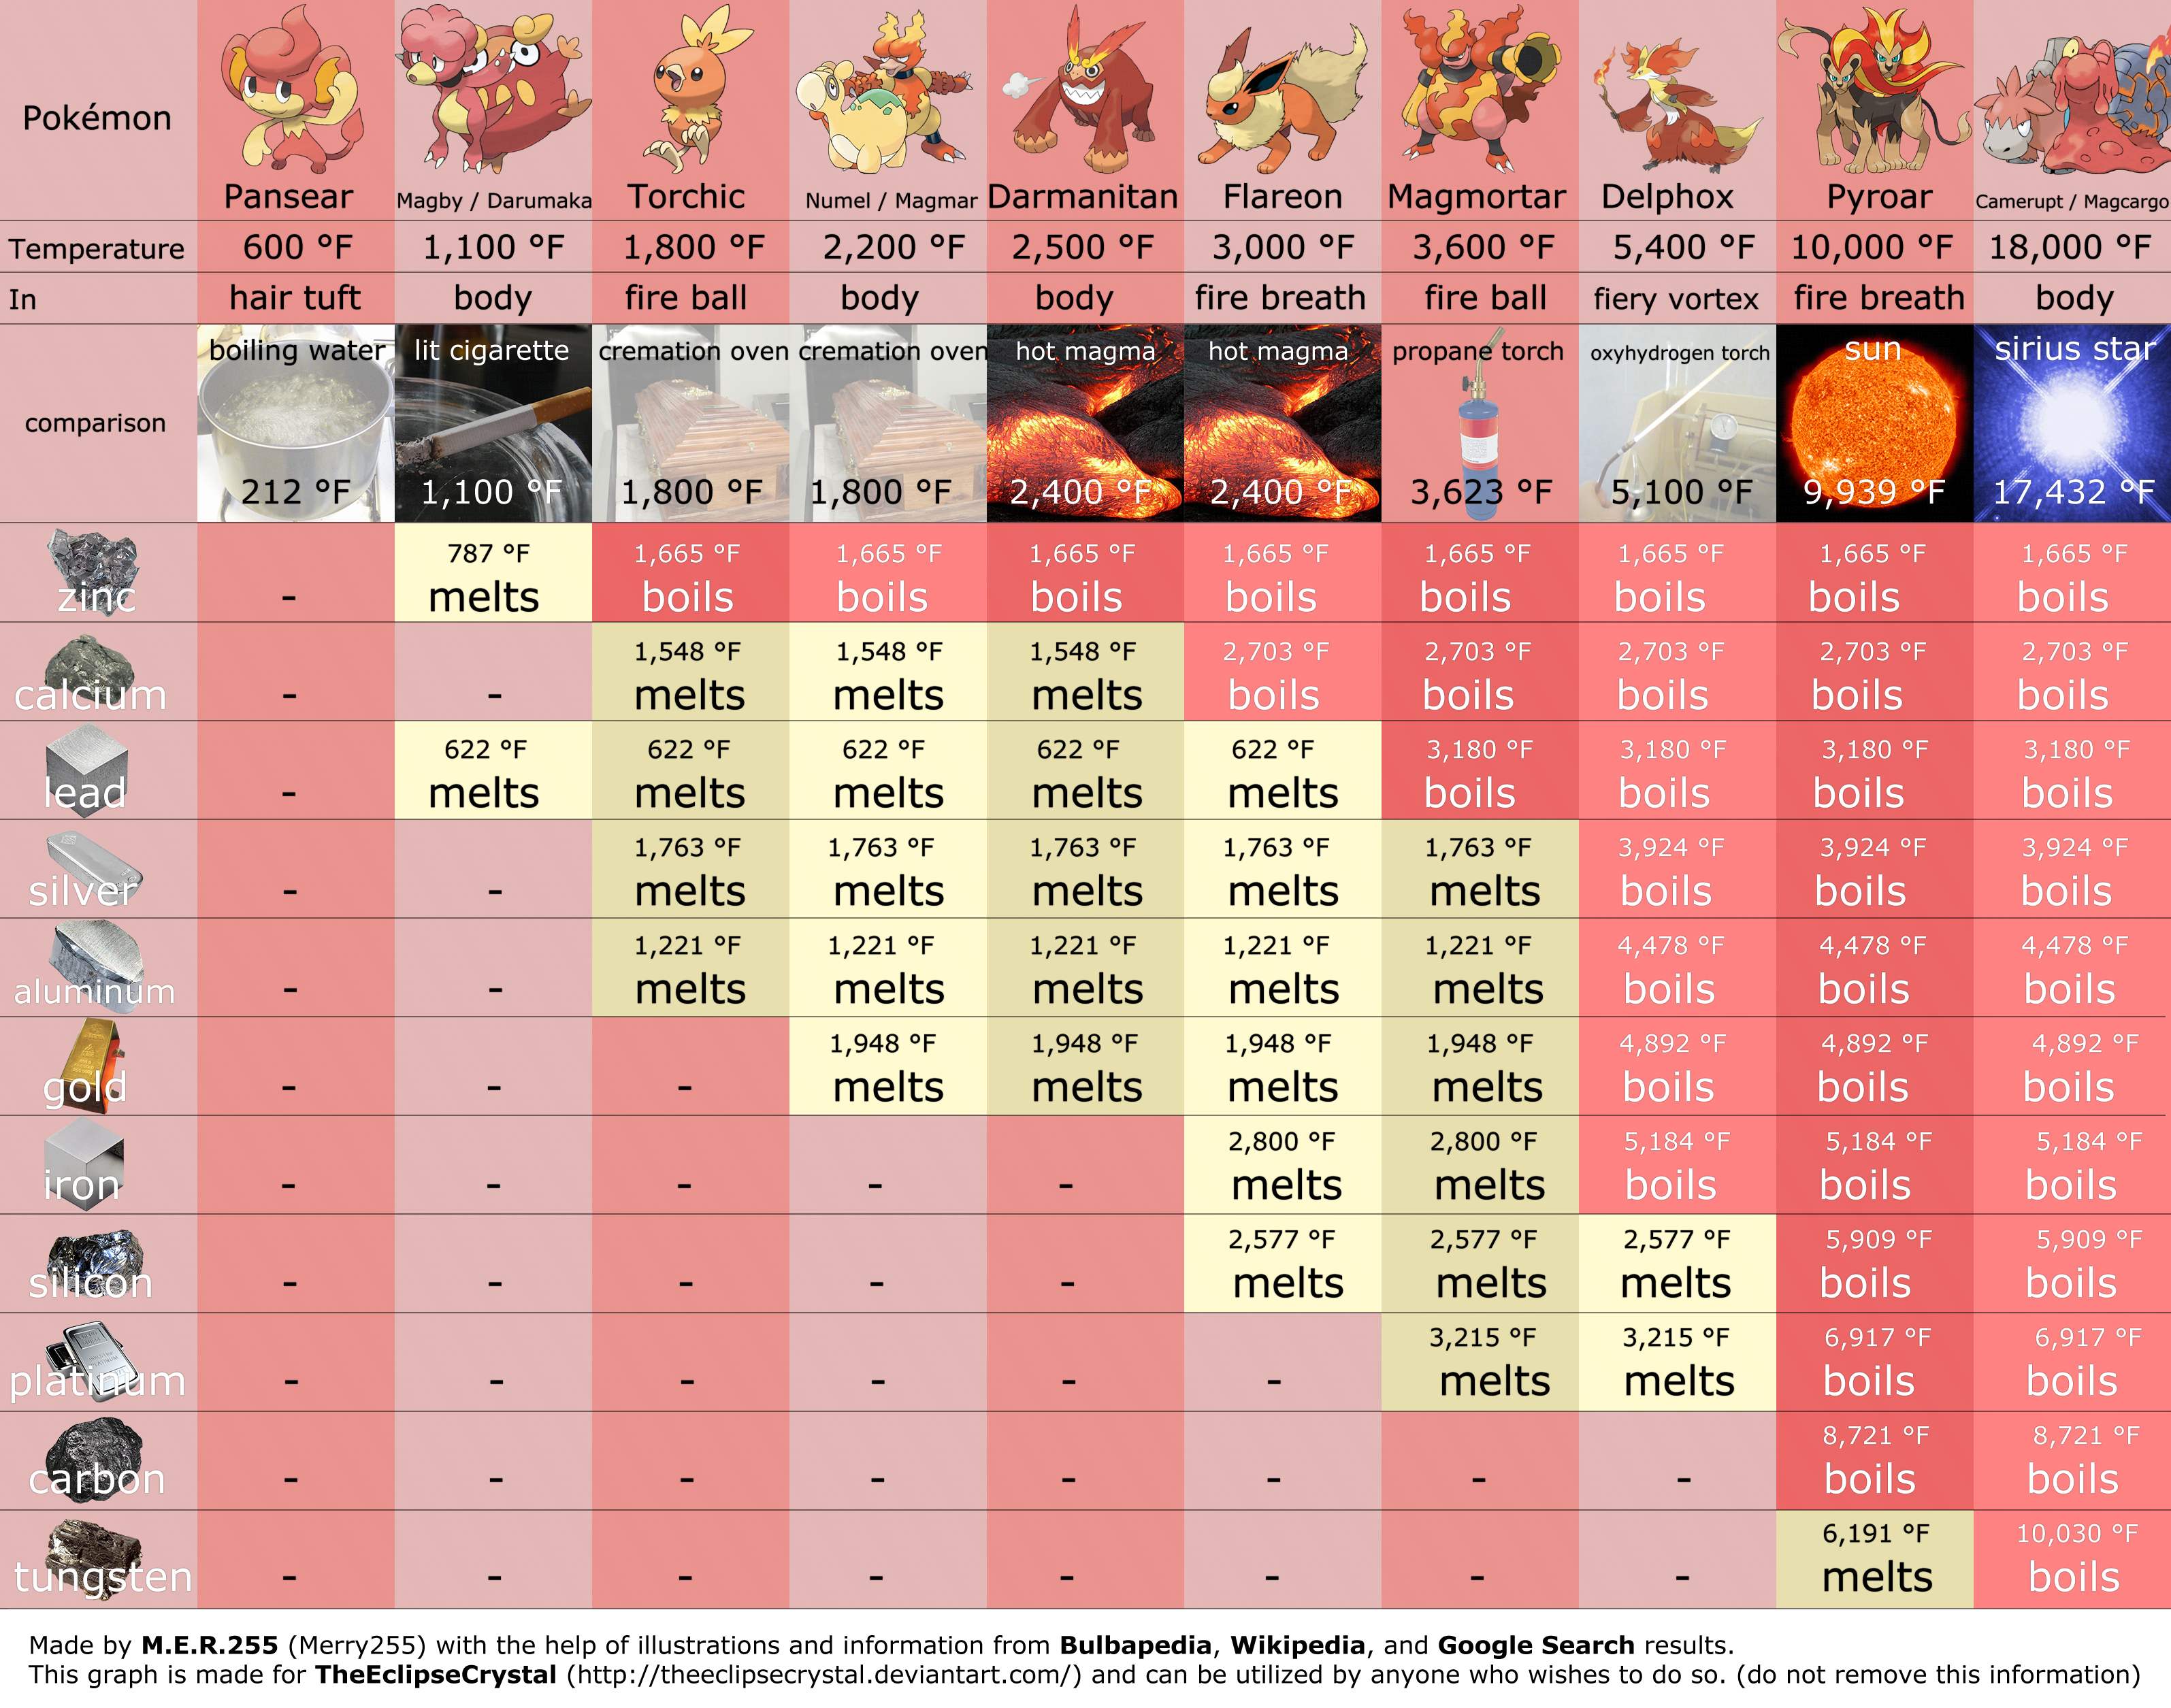 pokemon fire types and their temperatures by merry255 on deviantart